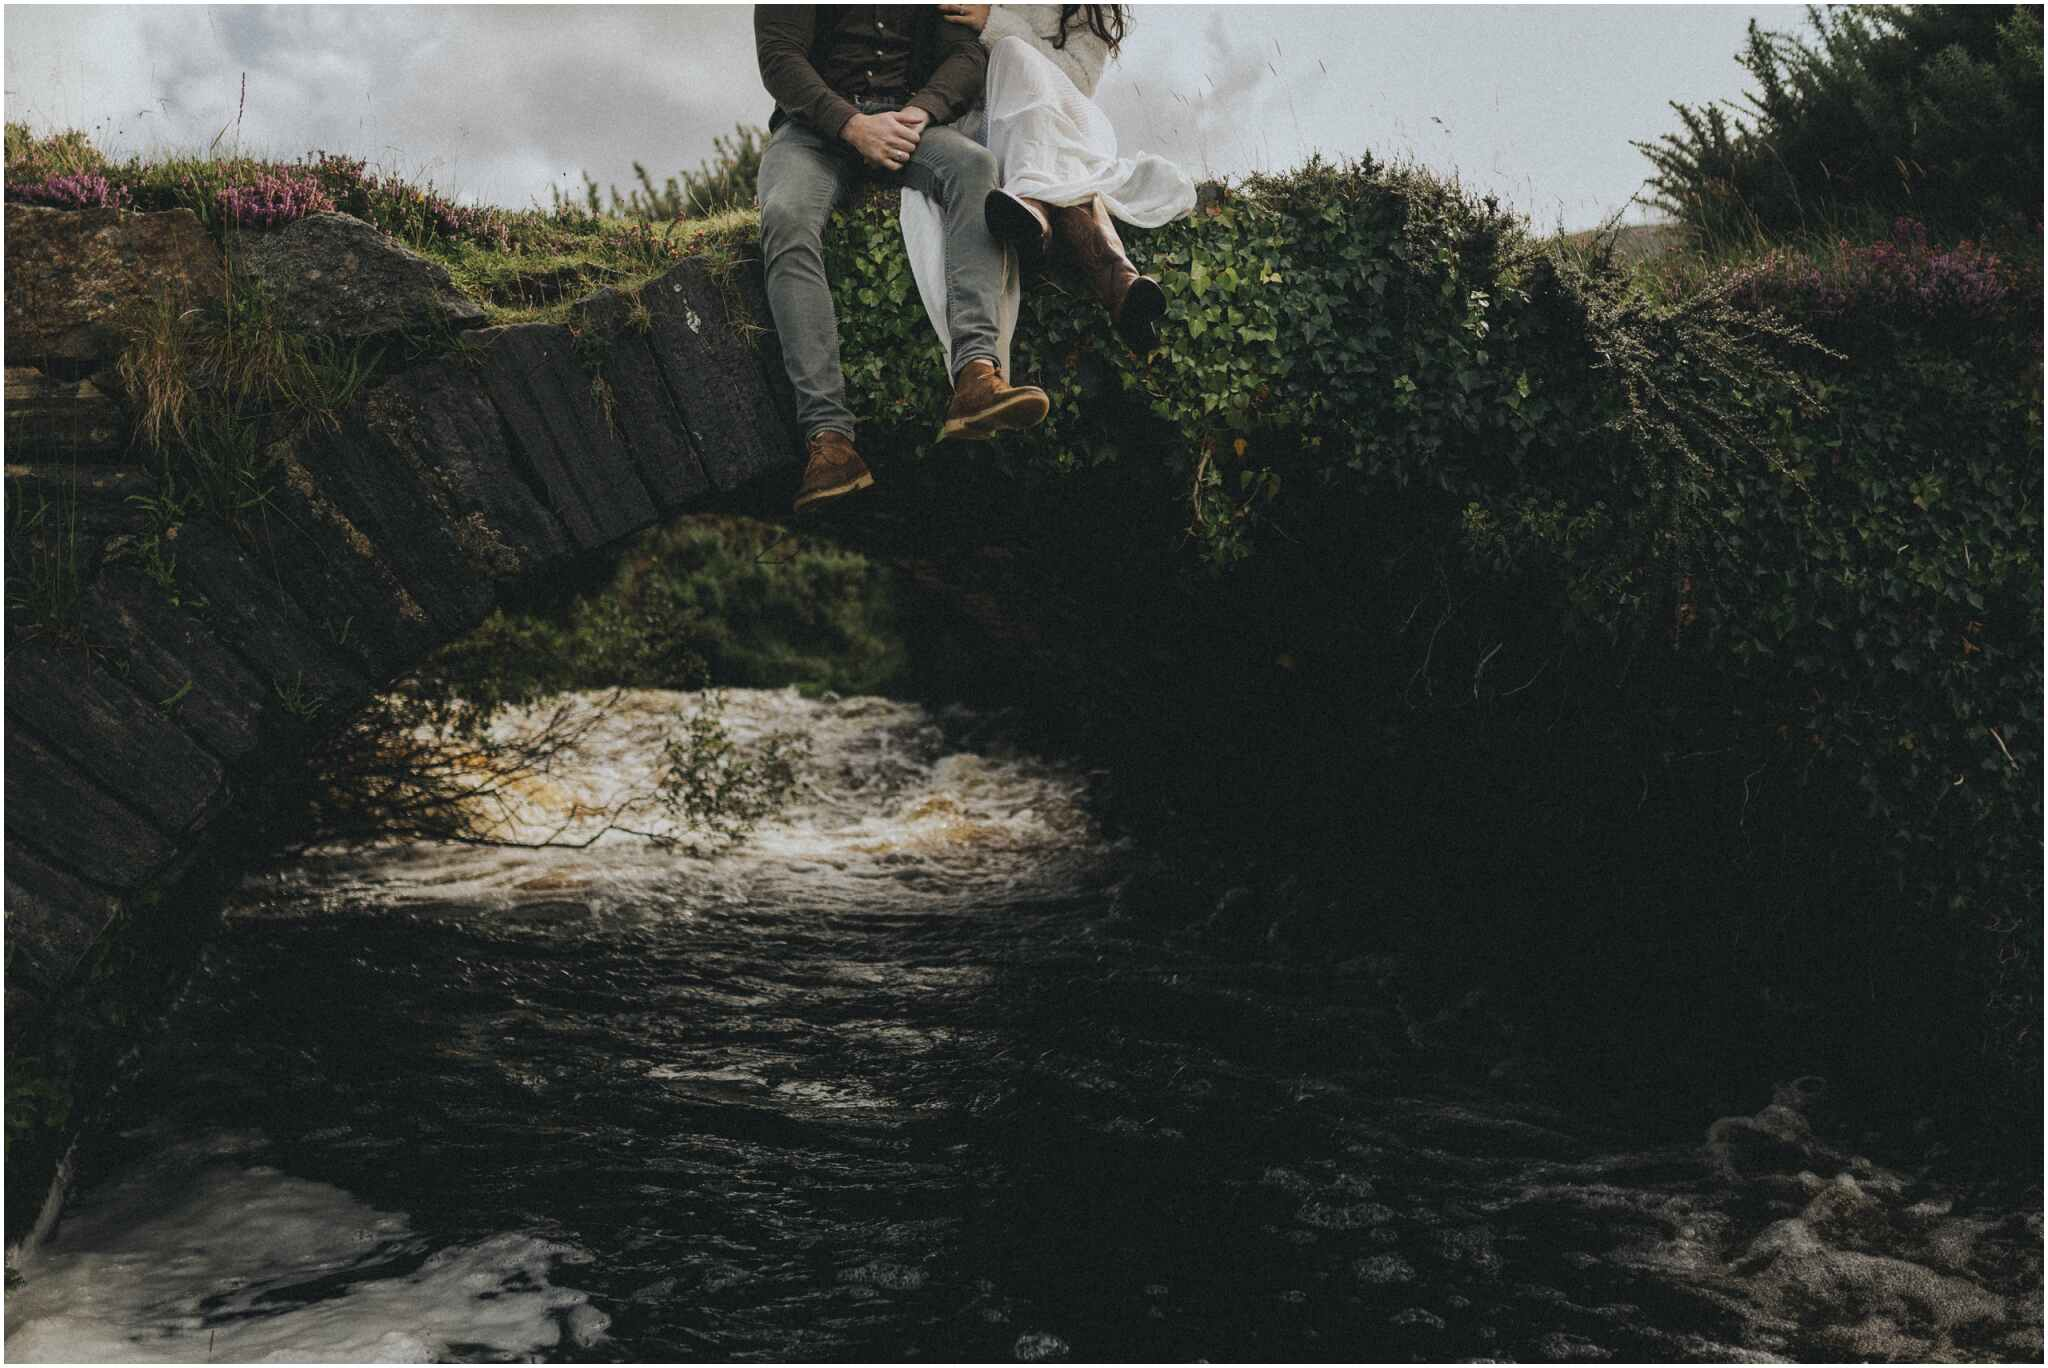 Rachel + David - Hiking Elopement in Muckish Mountain and Poisoned Glen, Donegal 24